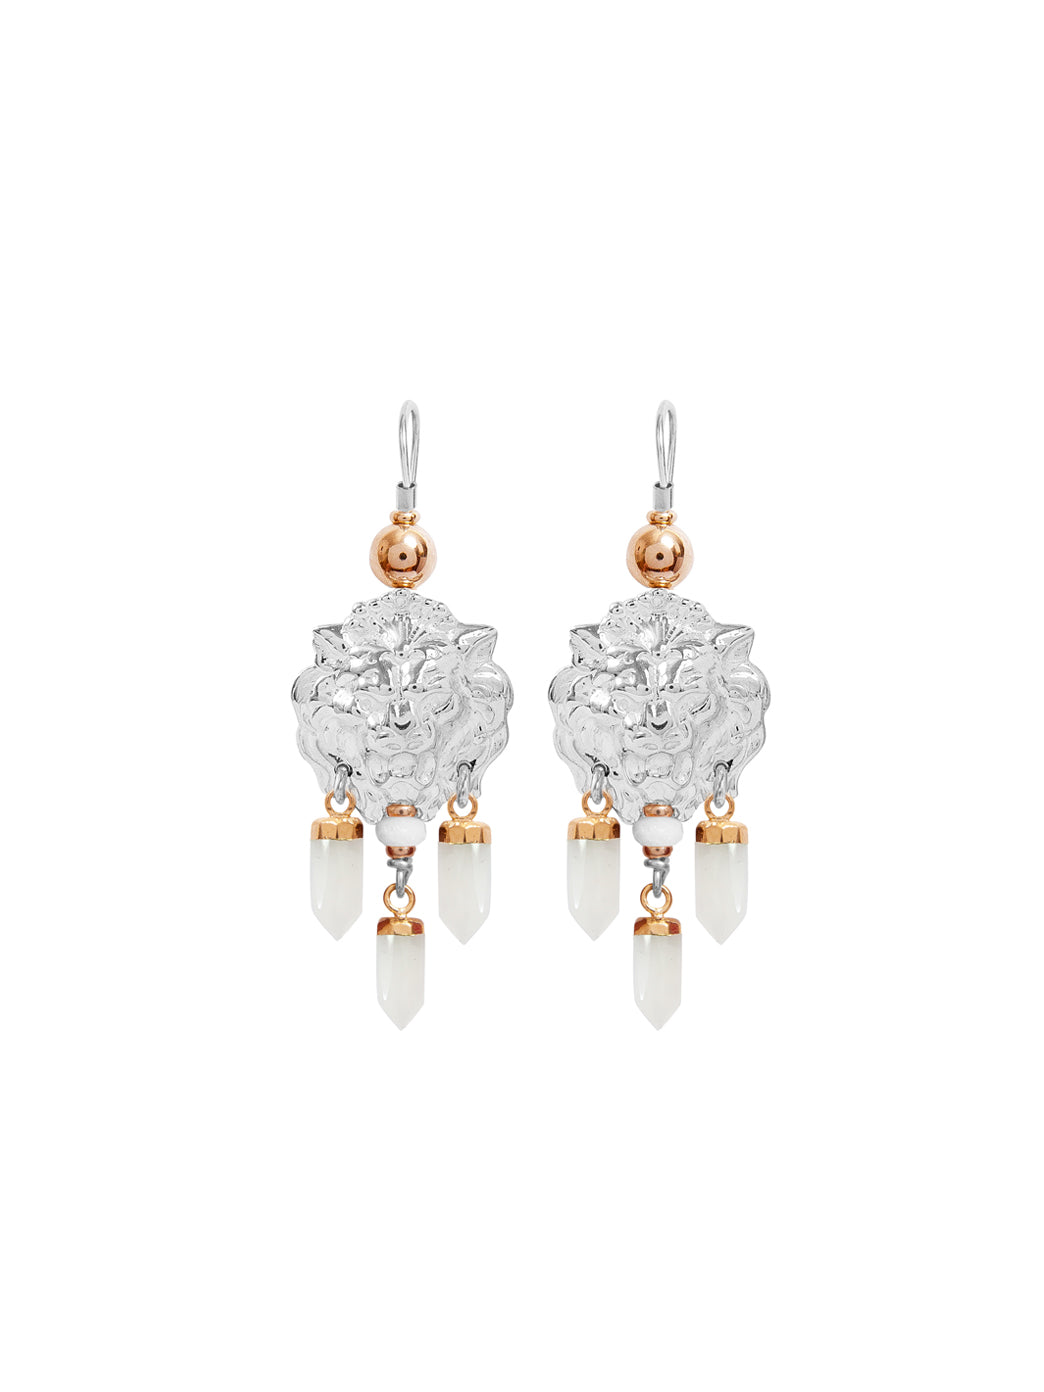 Fiorina Jewellery Taormina Earrings White Quartz